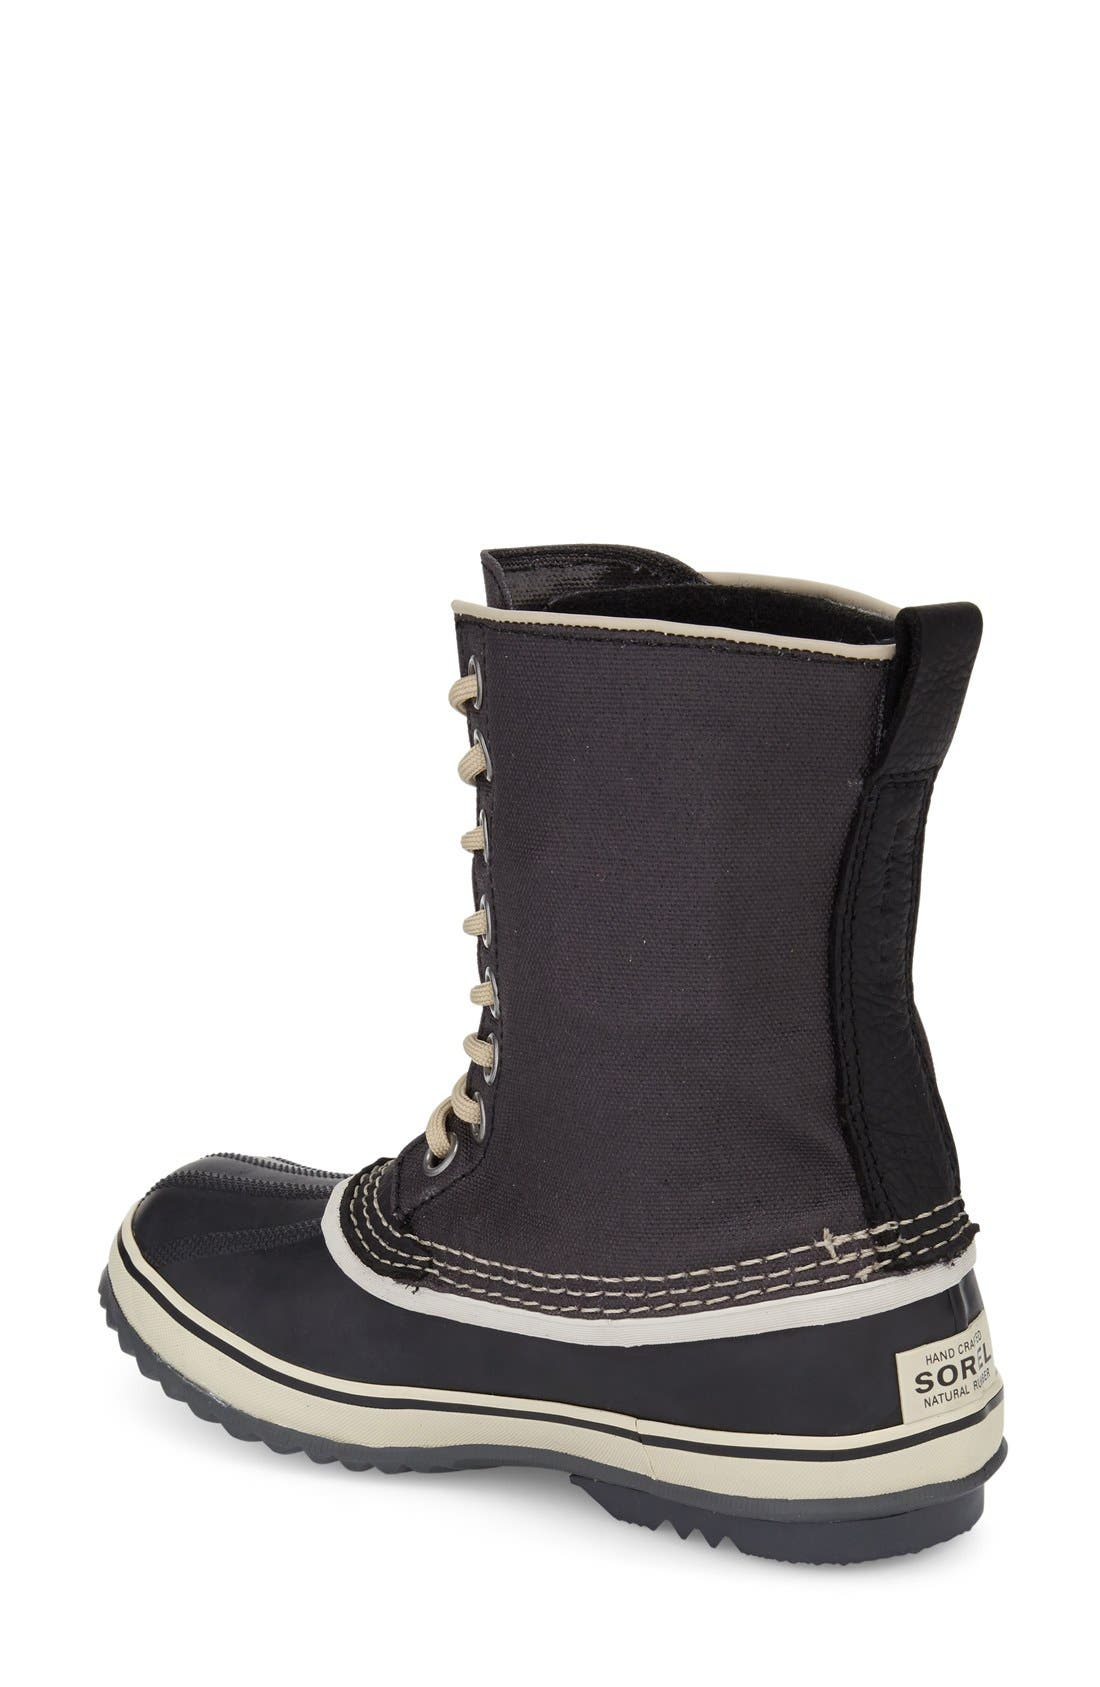 '1964 Premium' Waterproof Boot,                             Alternate thumbnail 3, color,                             BLACK/ FOSSIL